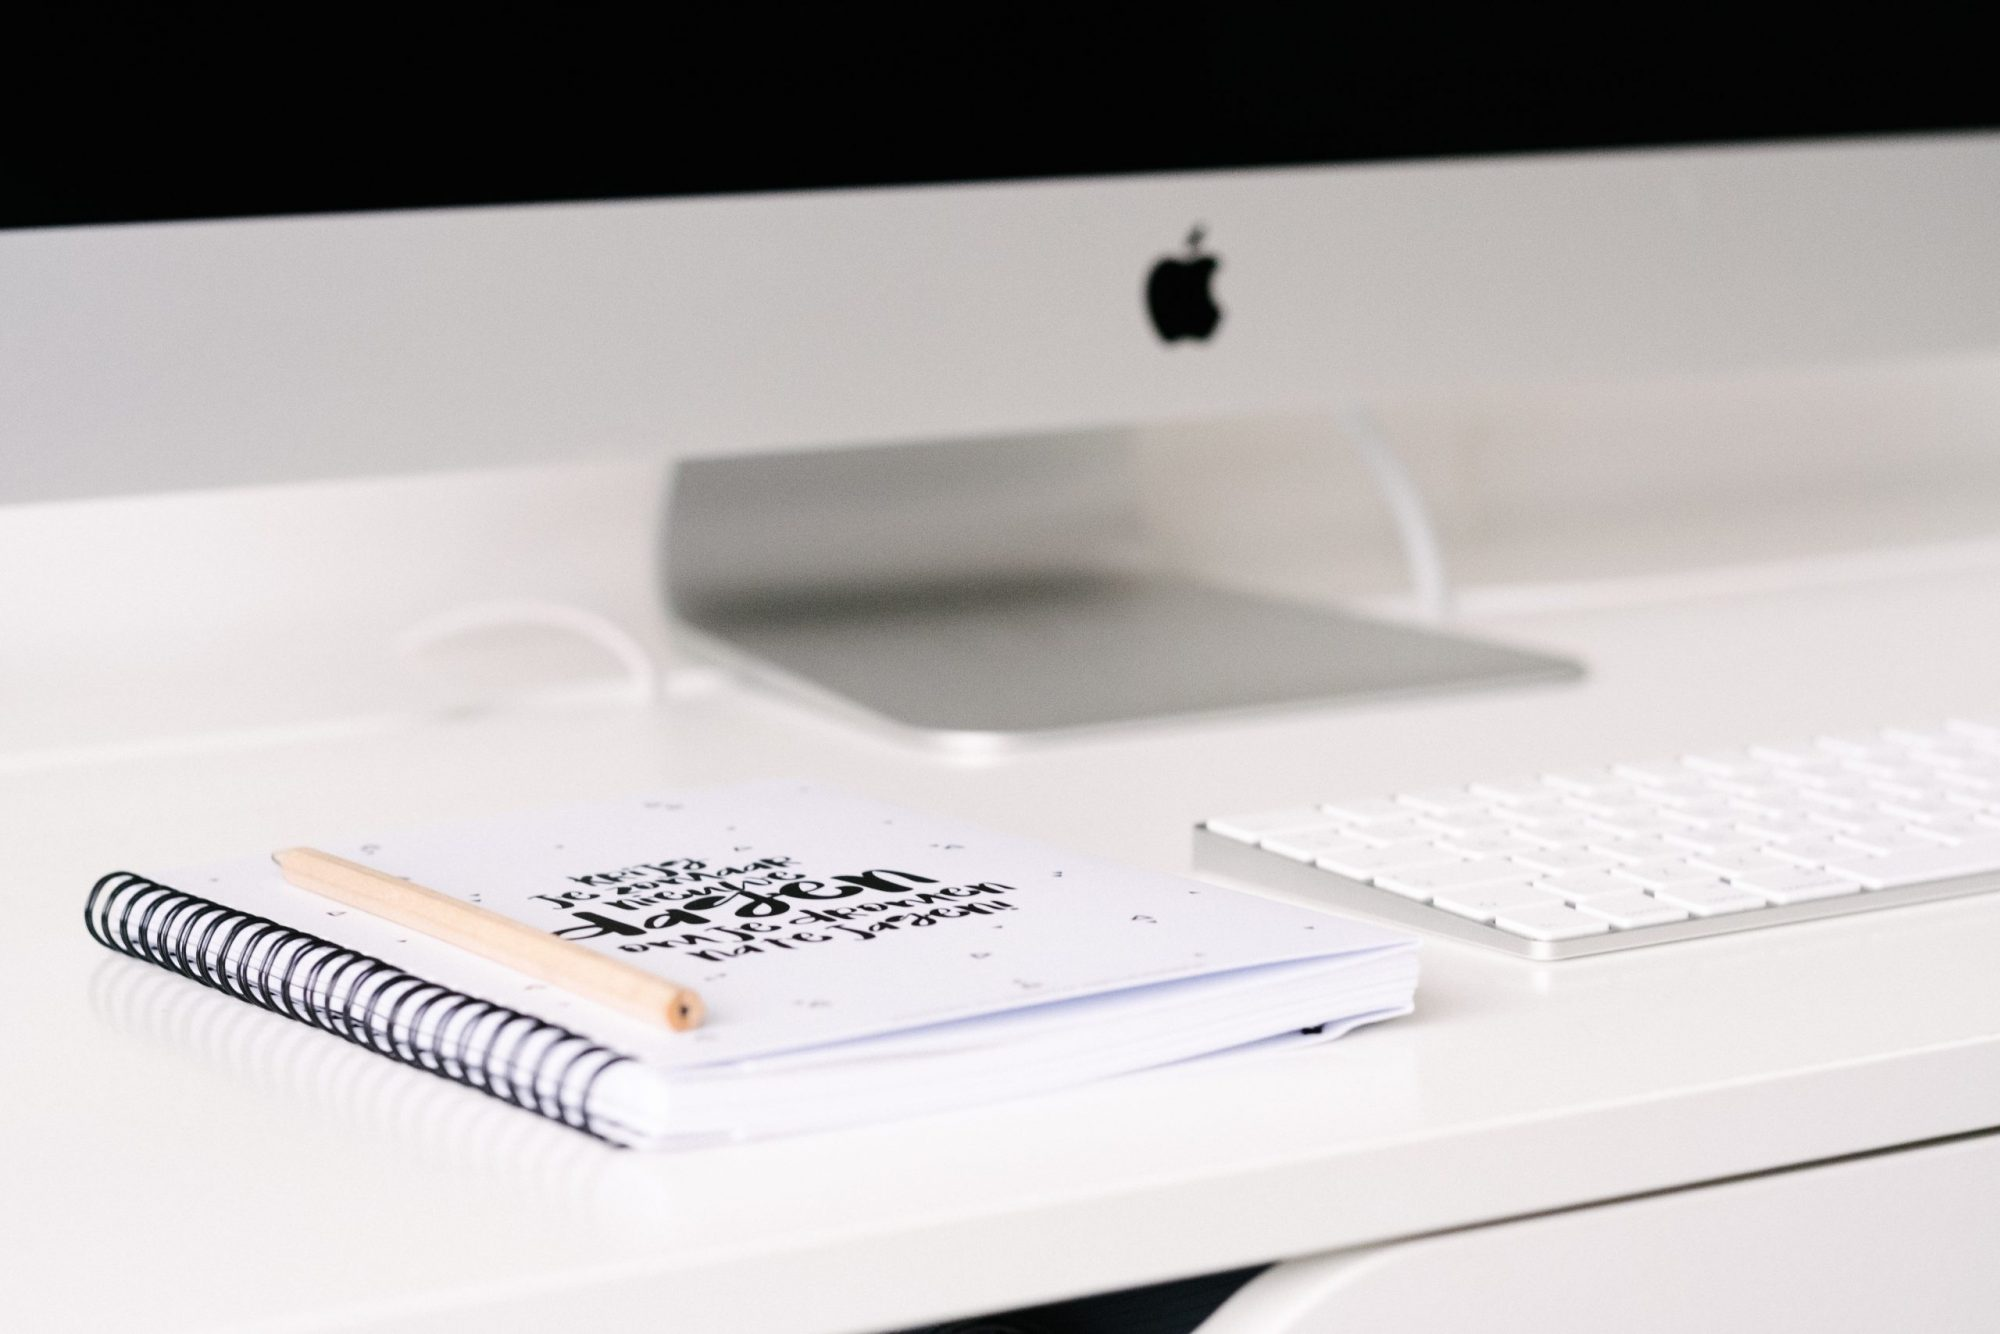 apple computer, keyboard and notebook on white desk